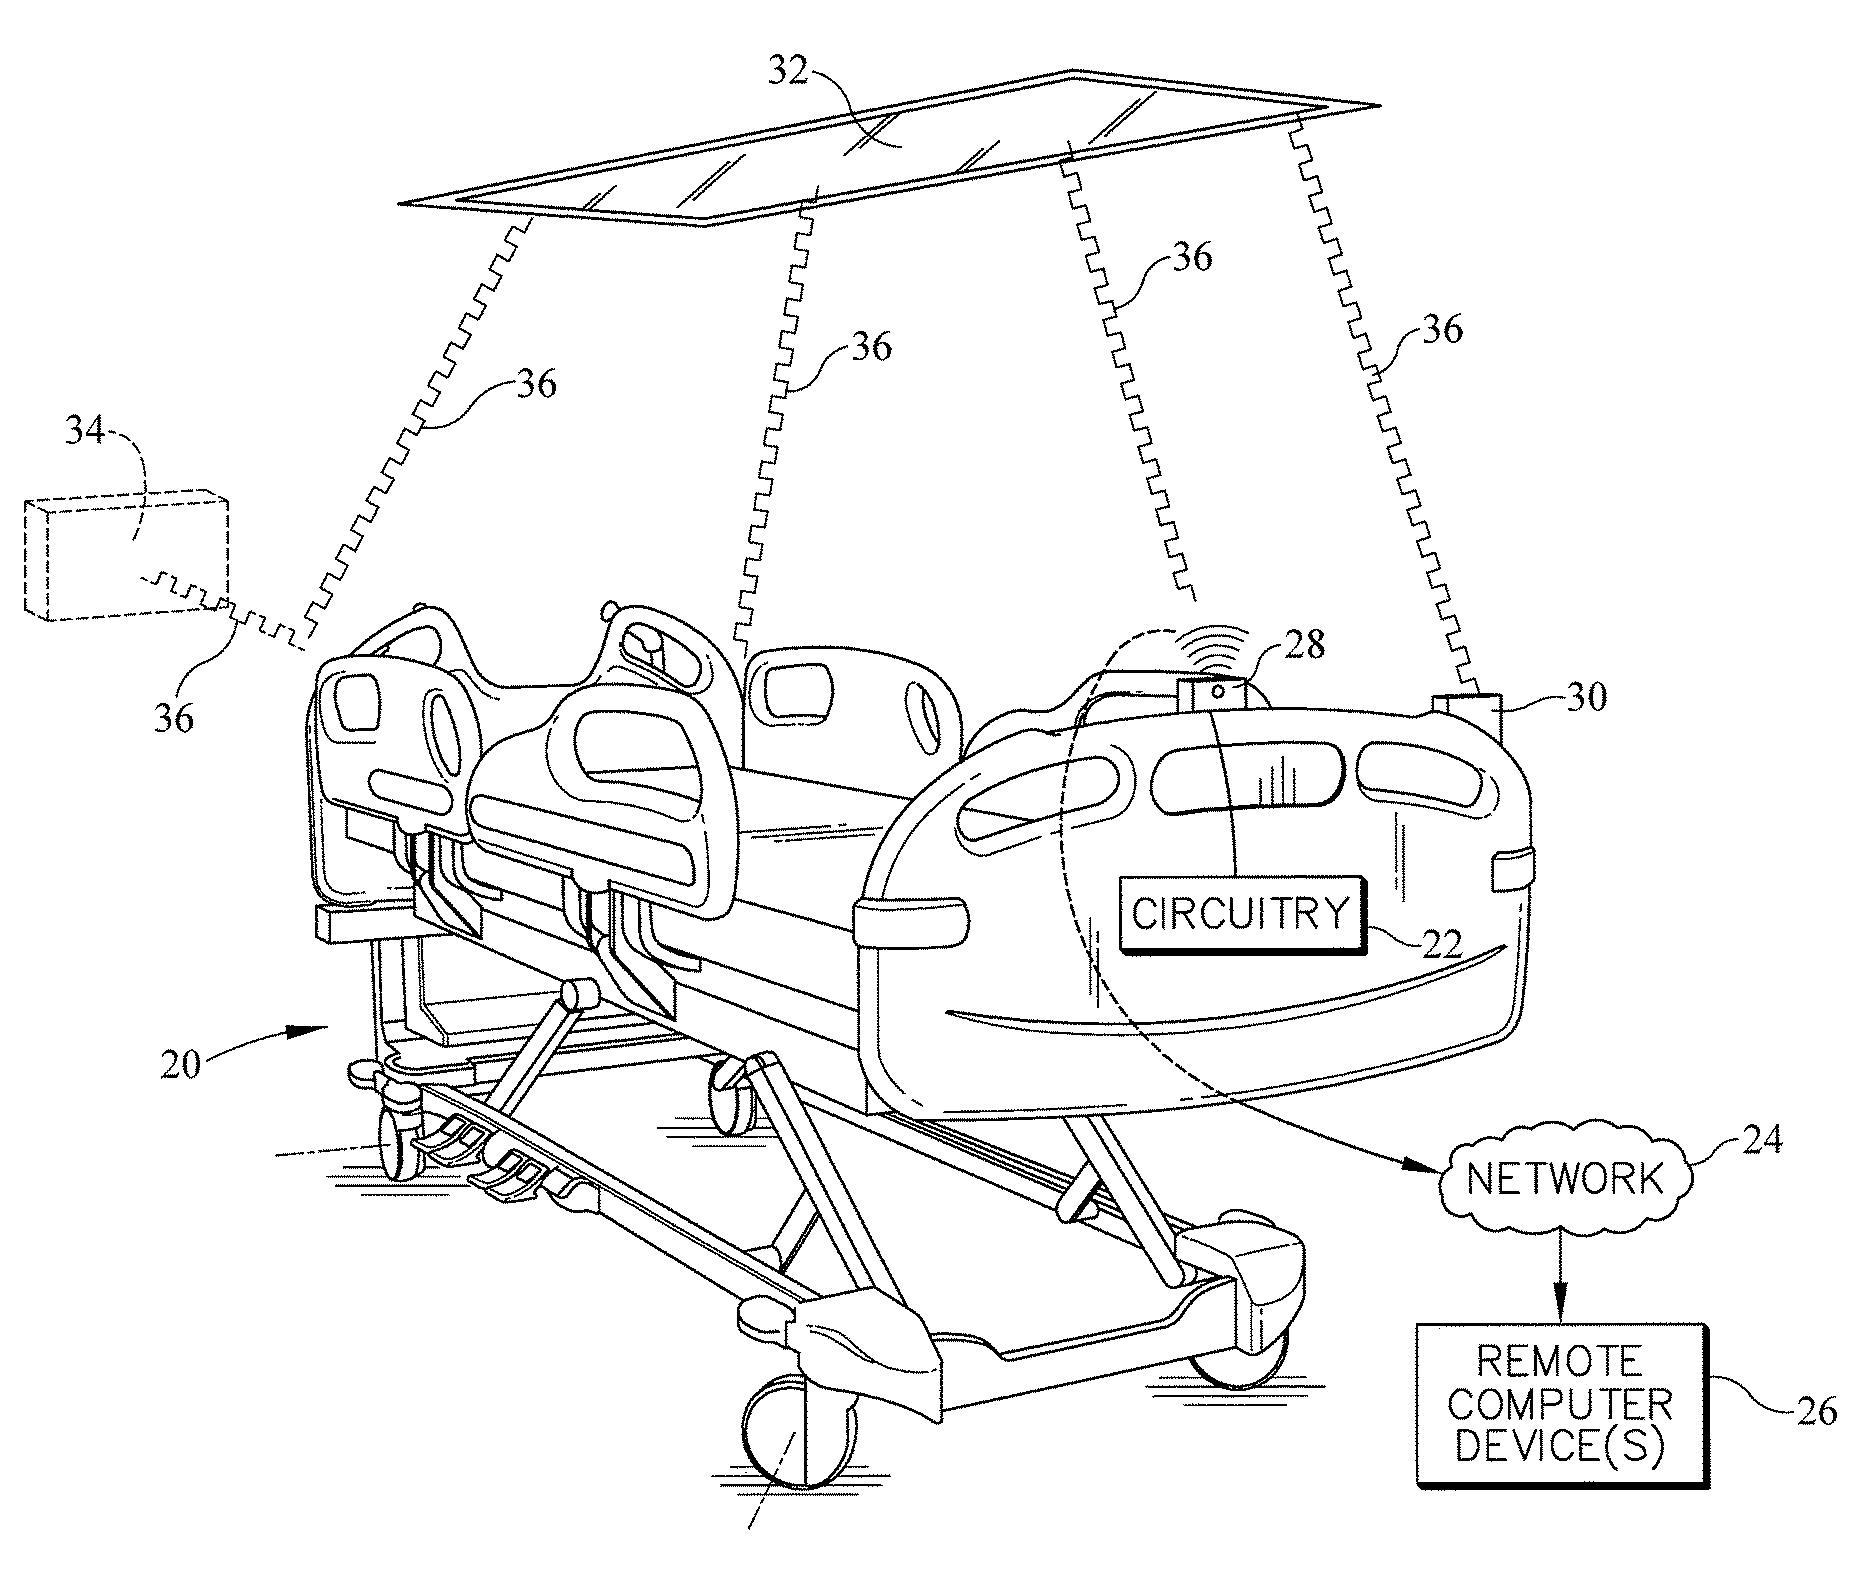 Patent Us 9830424 B2 Circuit Diagram Of The Power Train A Typical Atx Computer First Claim